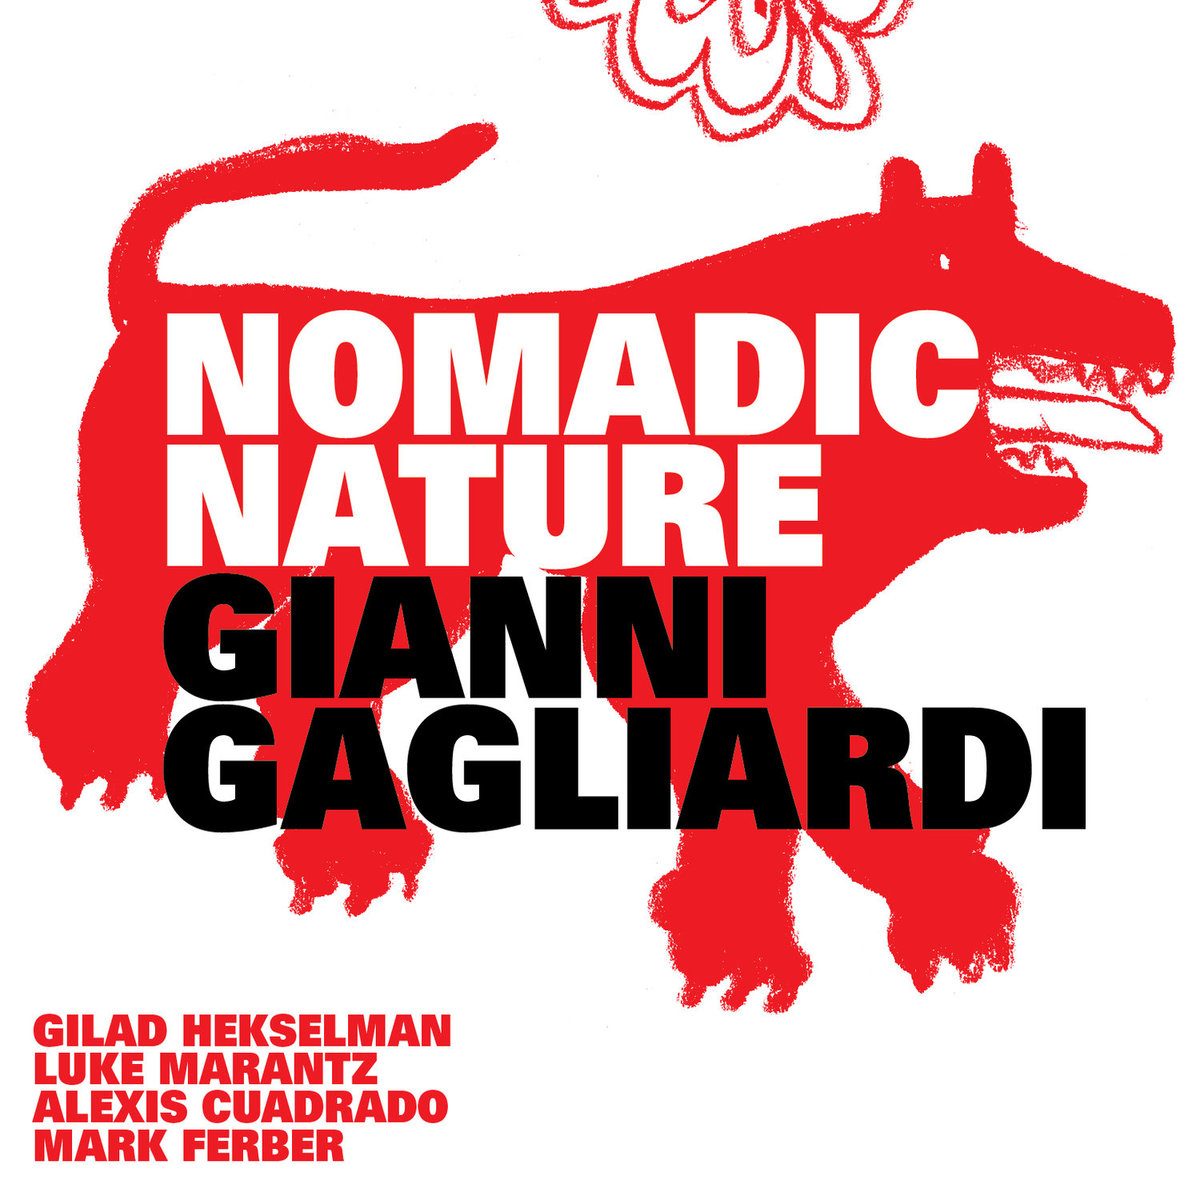 With Gianni Gagliardi- Saxophone Gilad Hekselman- Guitar Alexis Cuadrado- Bass Mark Ferber- Drums   https://nomadicnature.bandcamp.com/releases